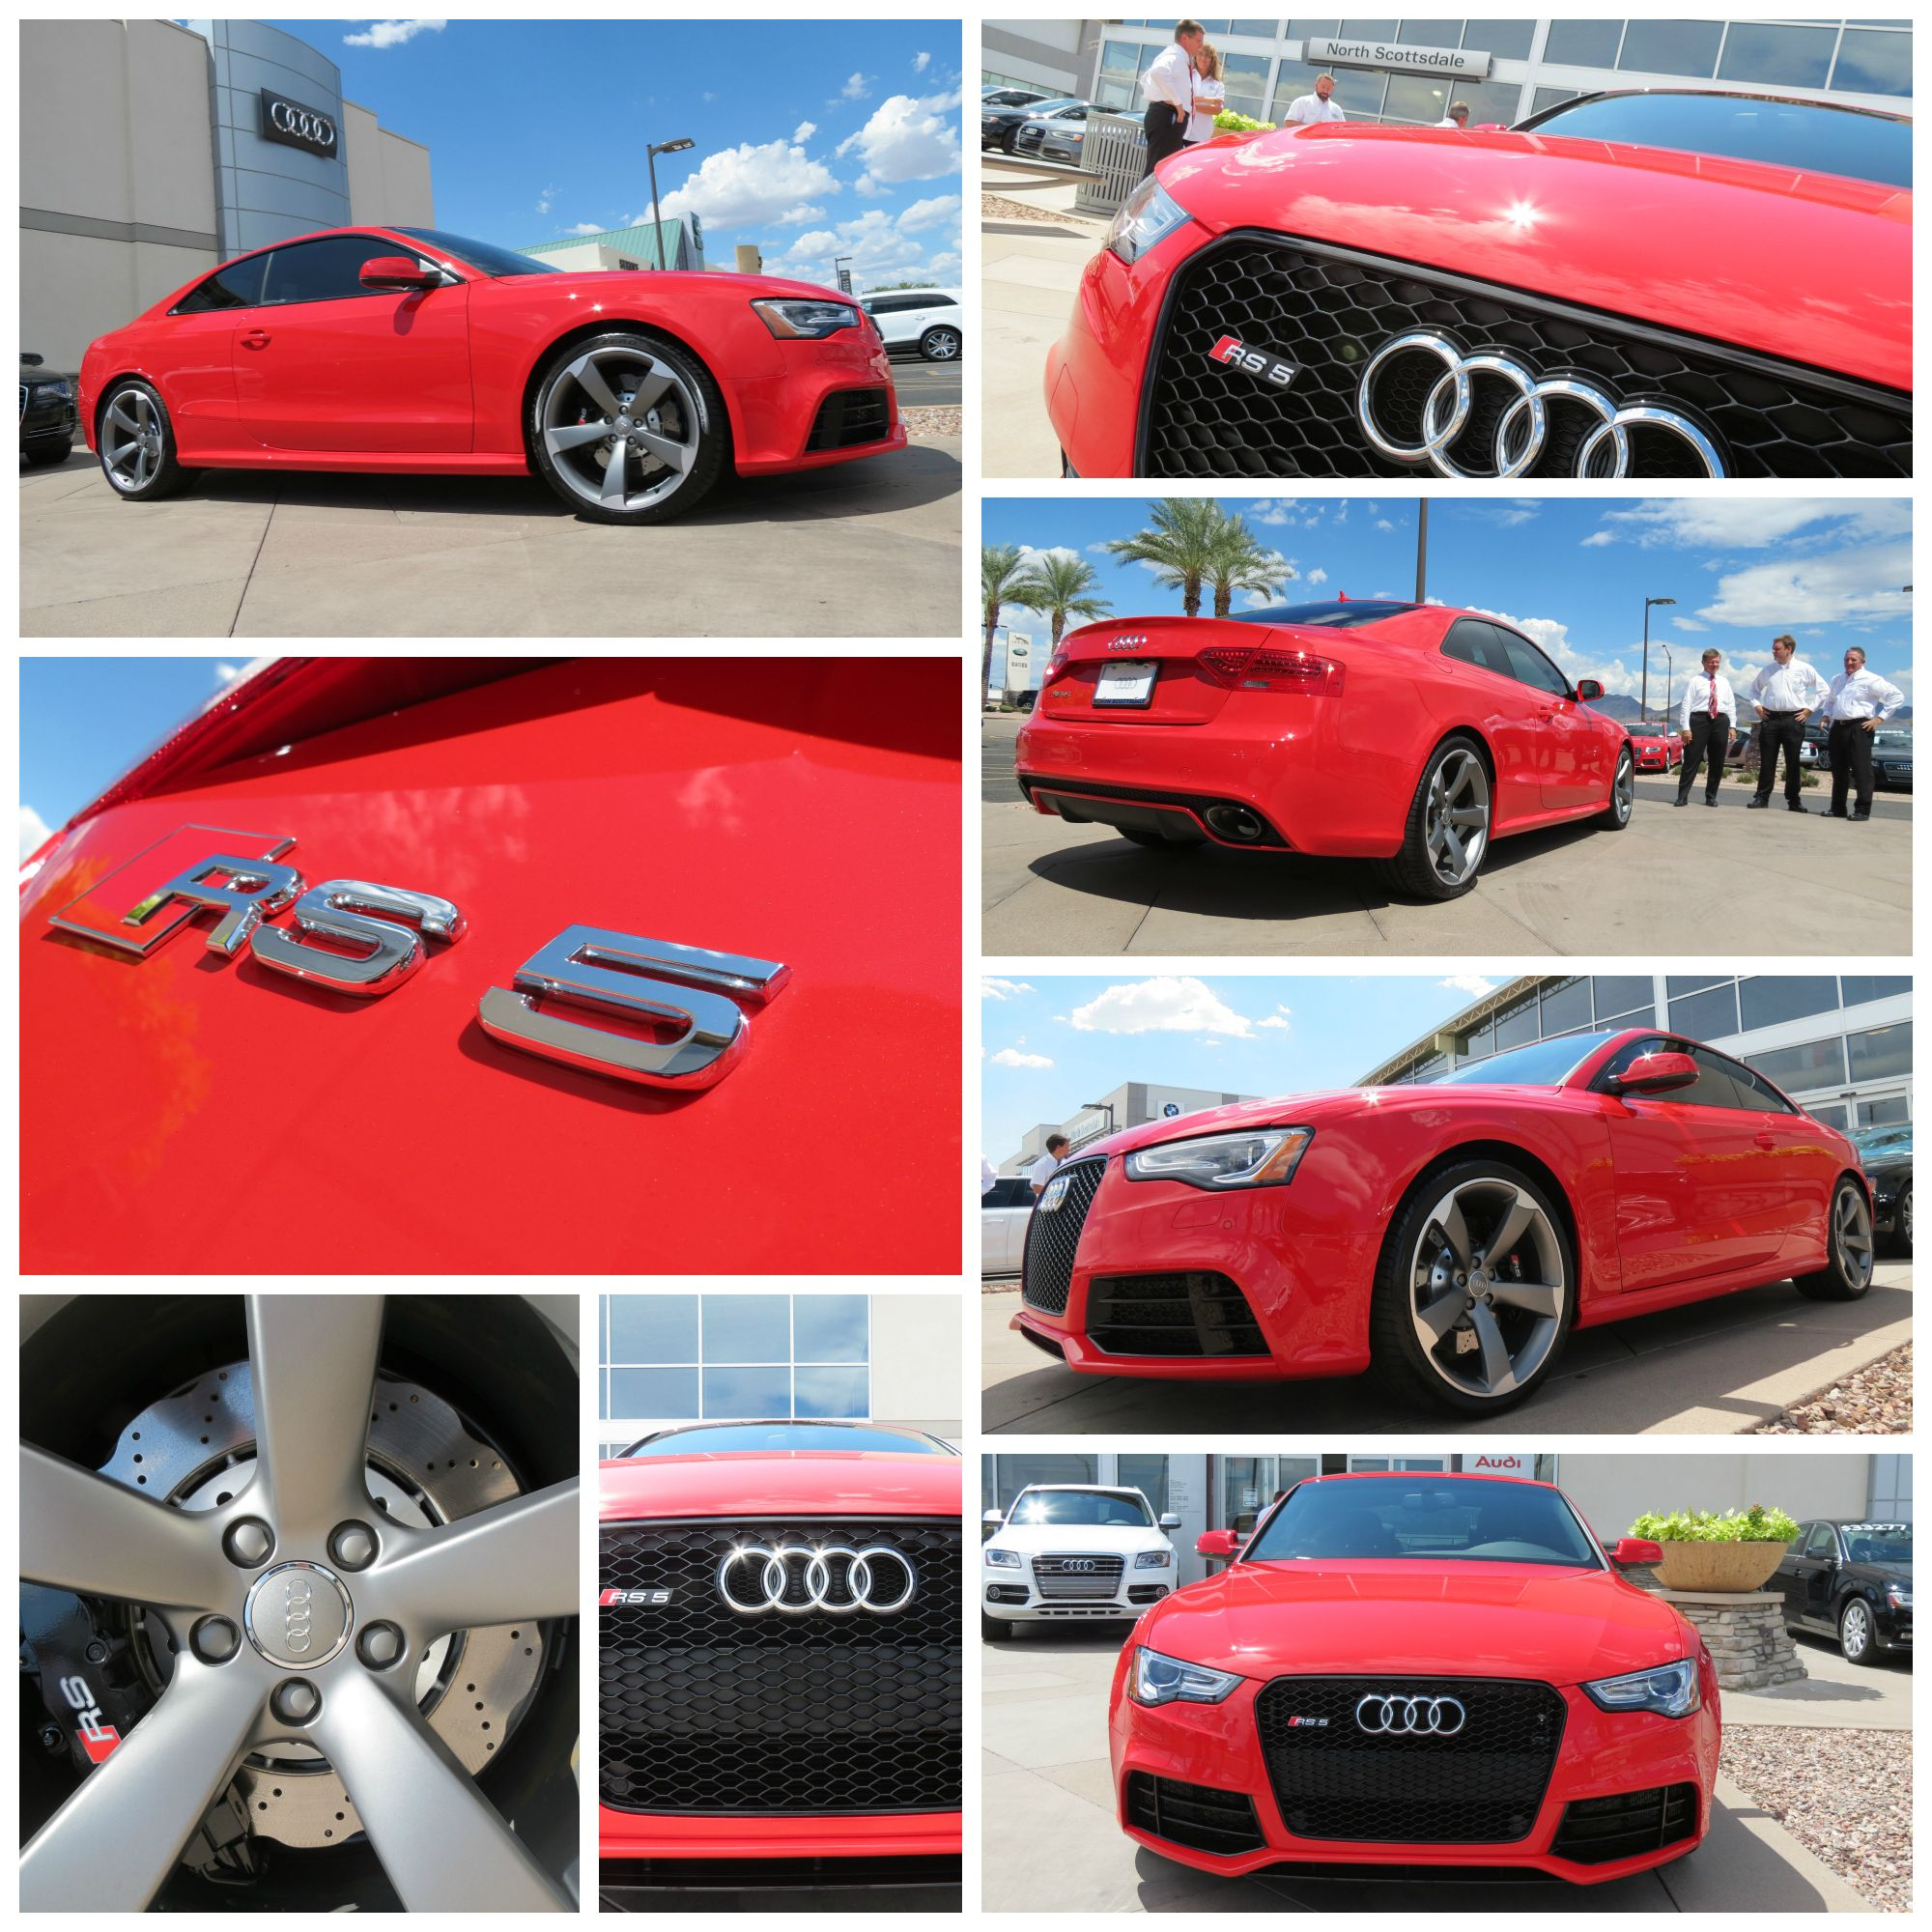 2014 Audi Rs5 Audi North Scottsdale Quattro Audiusa Fourrings Germancars Scottsdale Az Azcar Dreamride Audi Audi S5 Audi Rs5